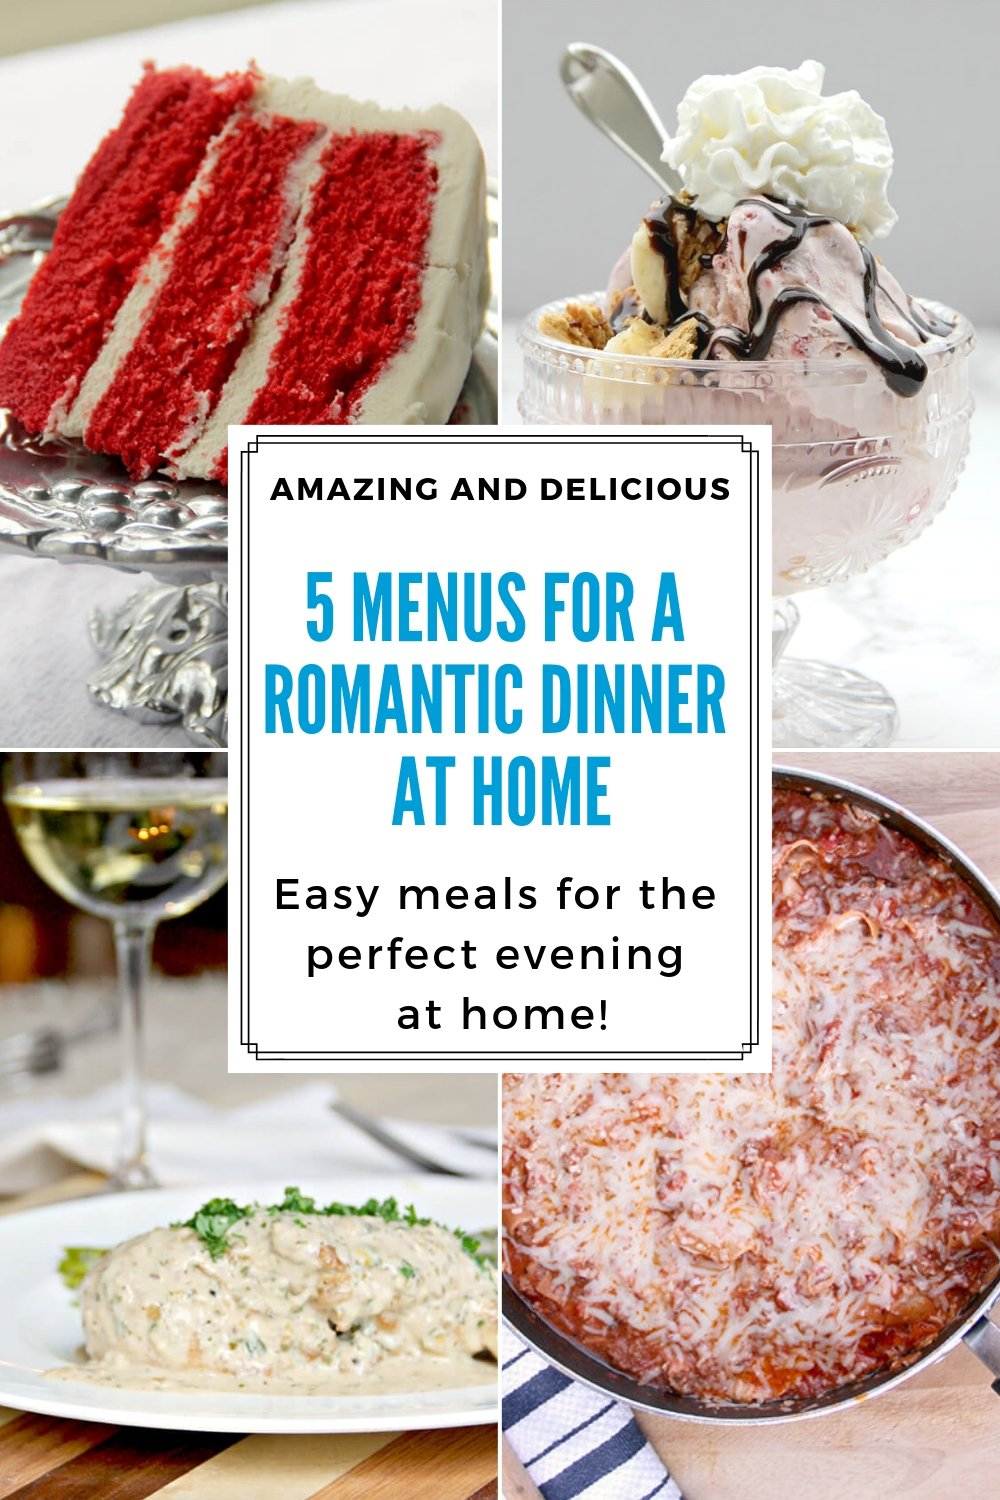 Have your best romantic dinner at home with this collection of menu ideas. These recipes are tried and true and will help make your night special.